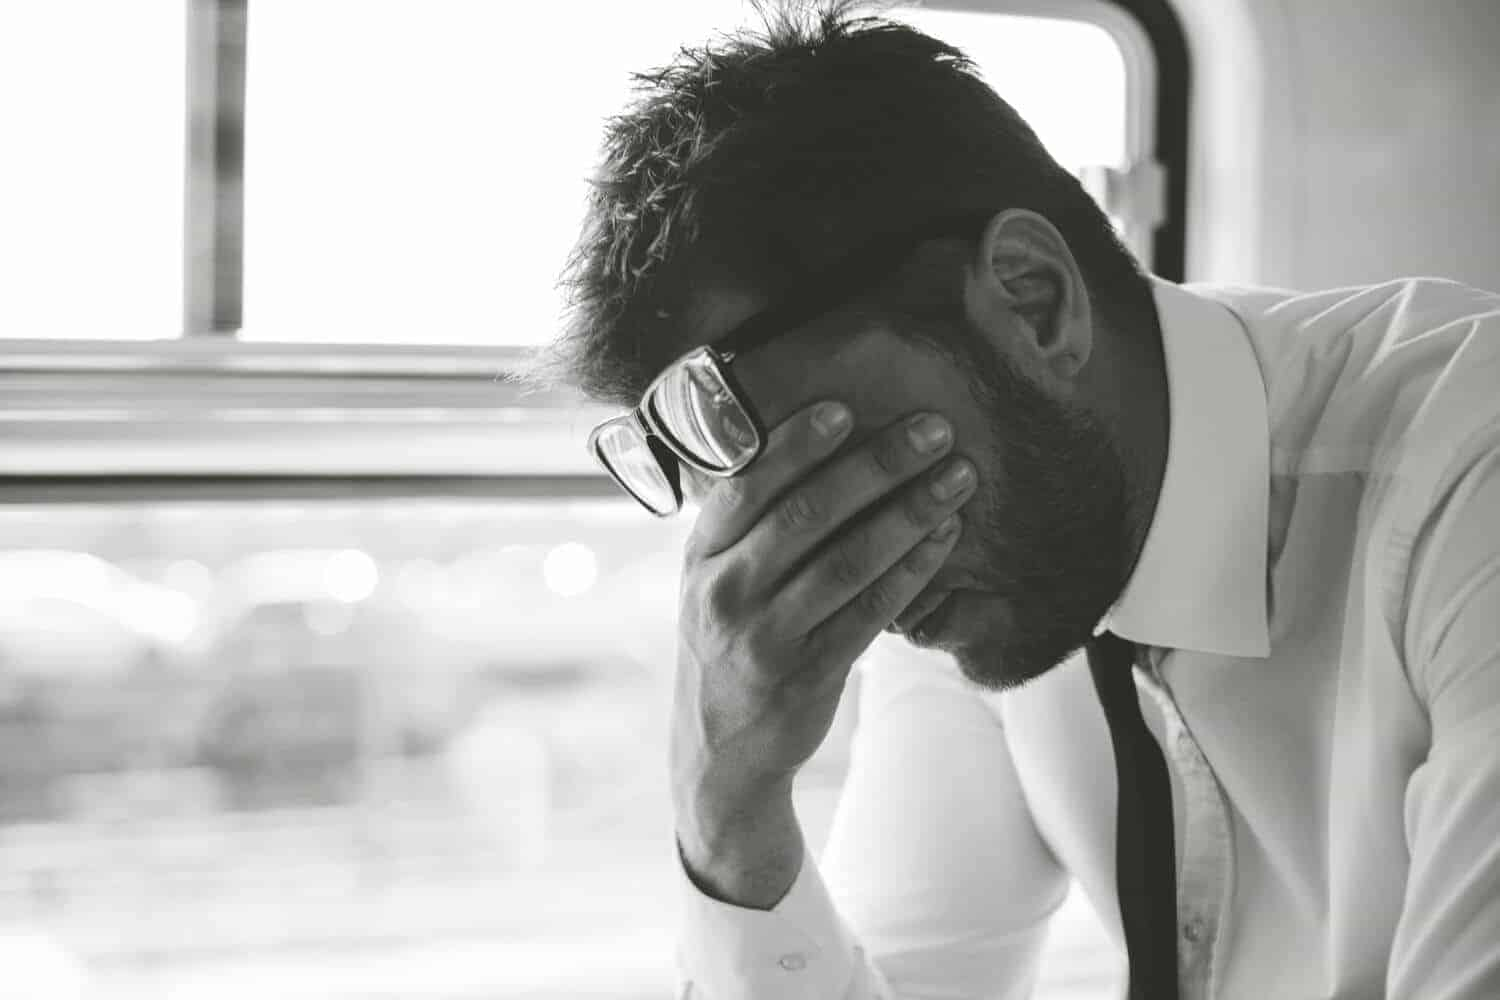 Financial stress upsets business man traveling home by train